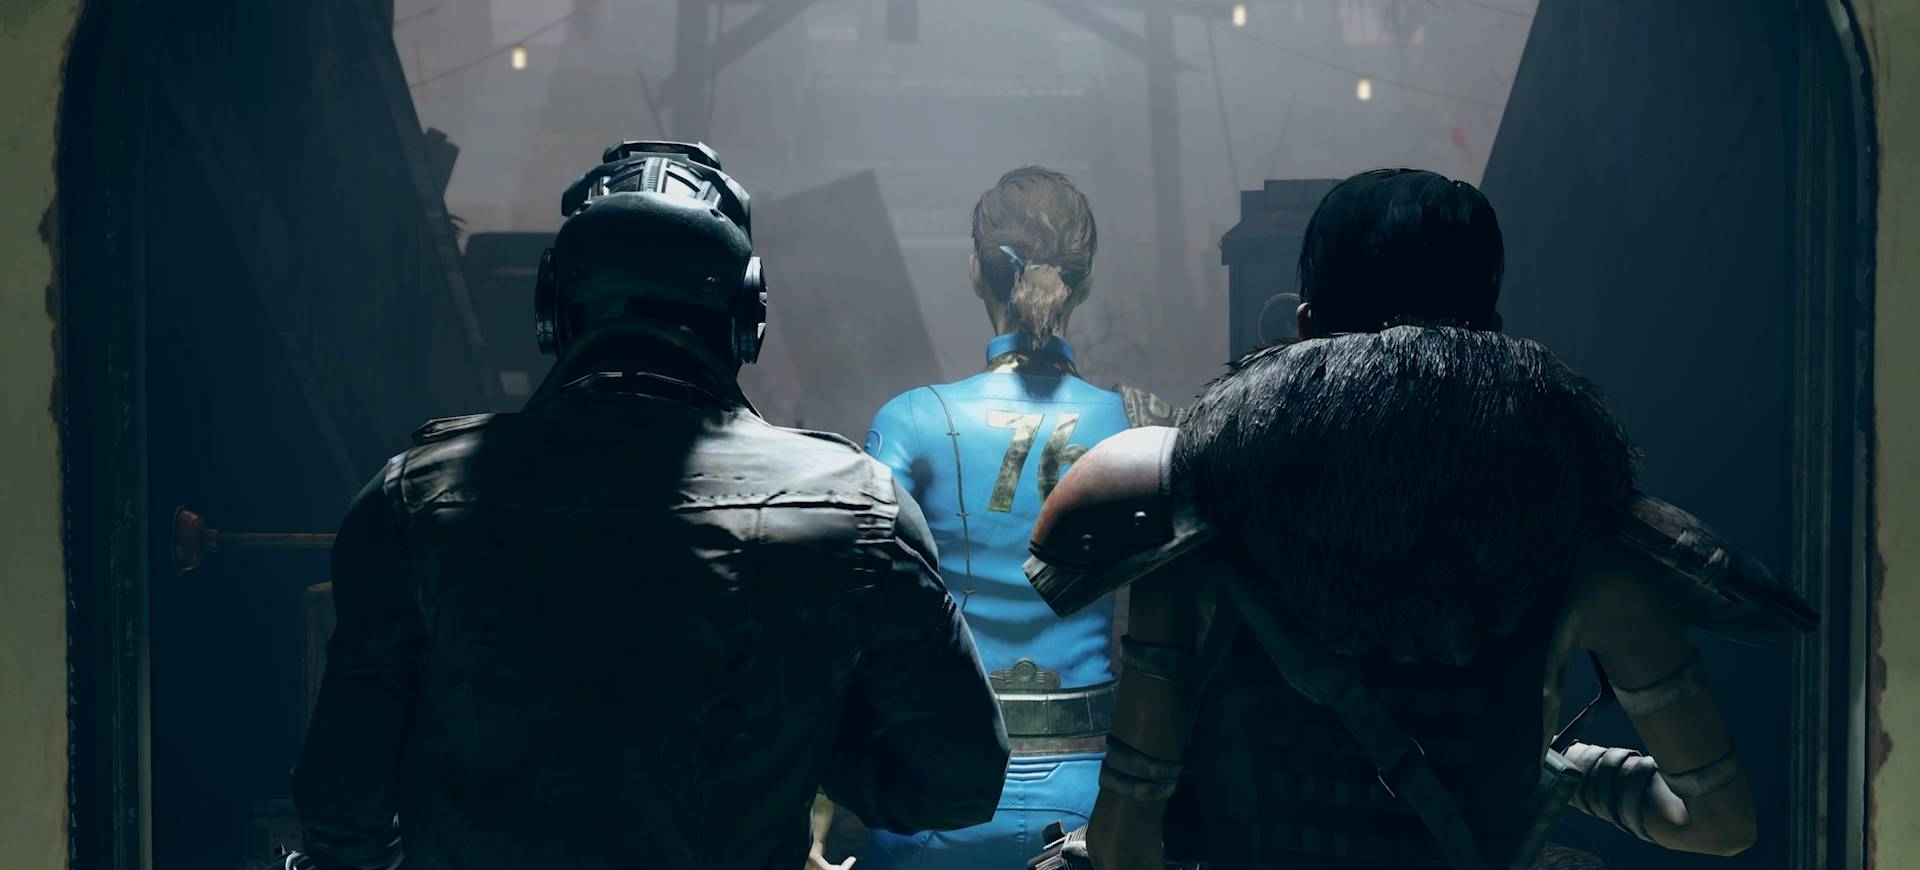 Another Embarrassing Gaffe: Dozens Of Fallout 76 Players Get Their Stuff Back Only After Being Cloned By Bethesda